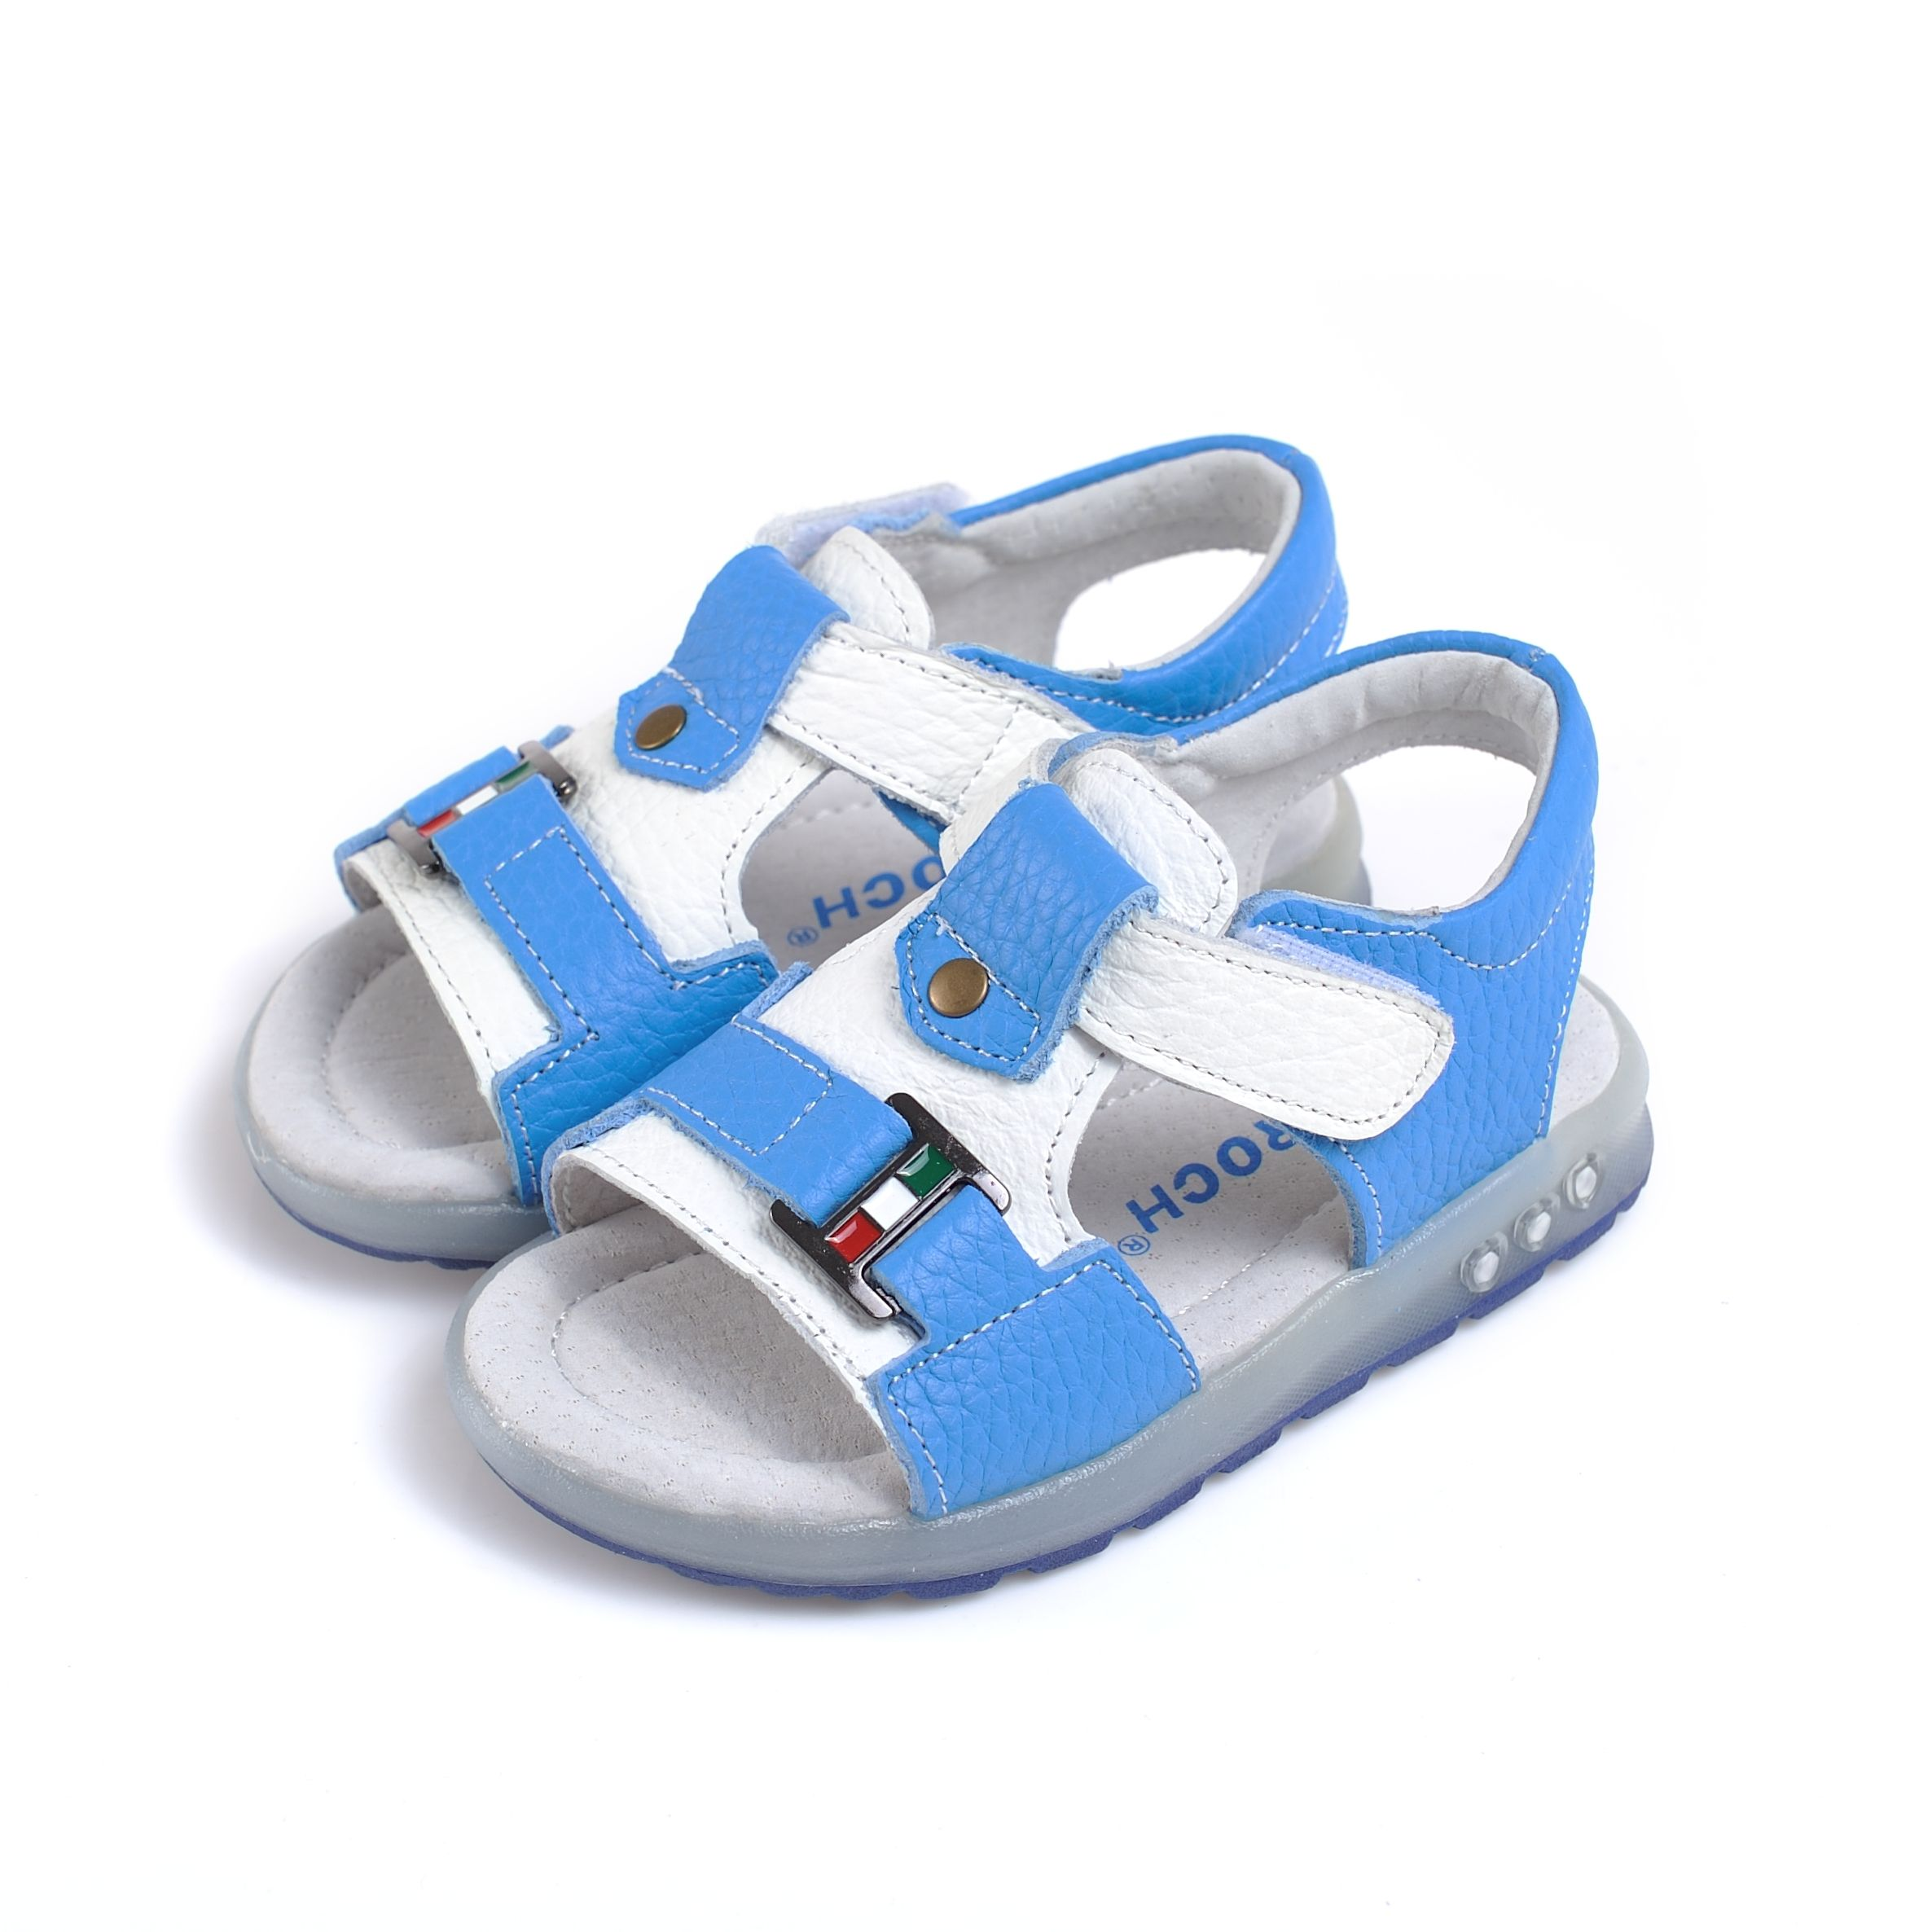 Caroch Sandals - new design!